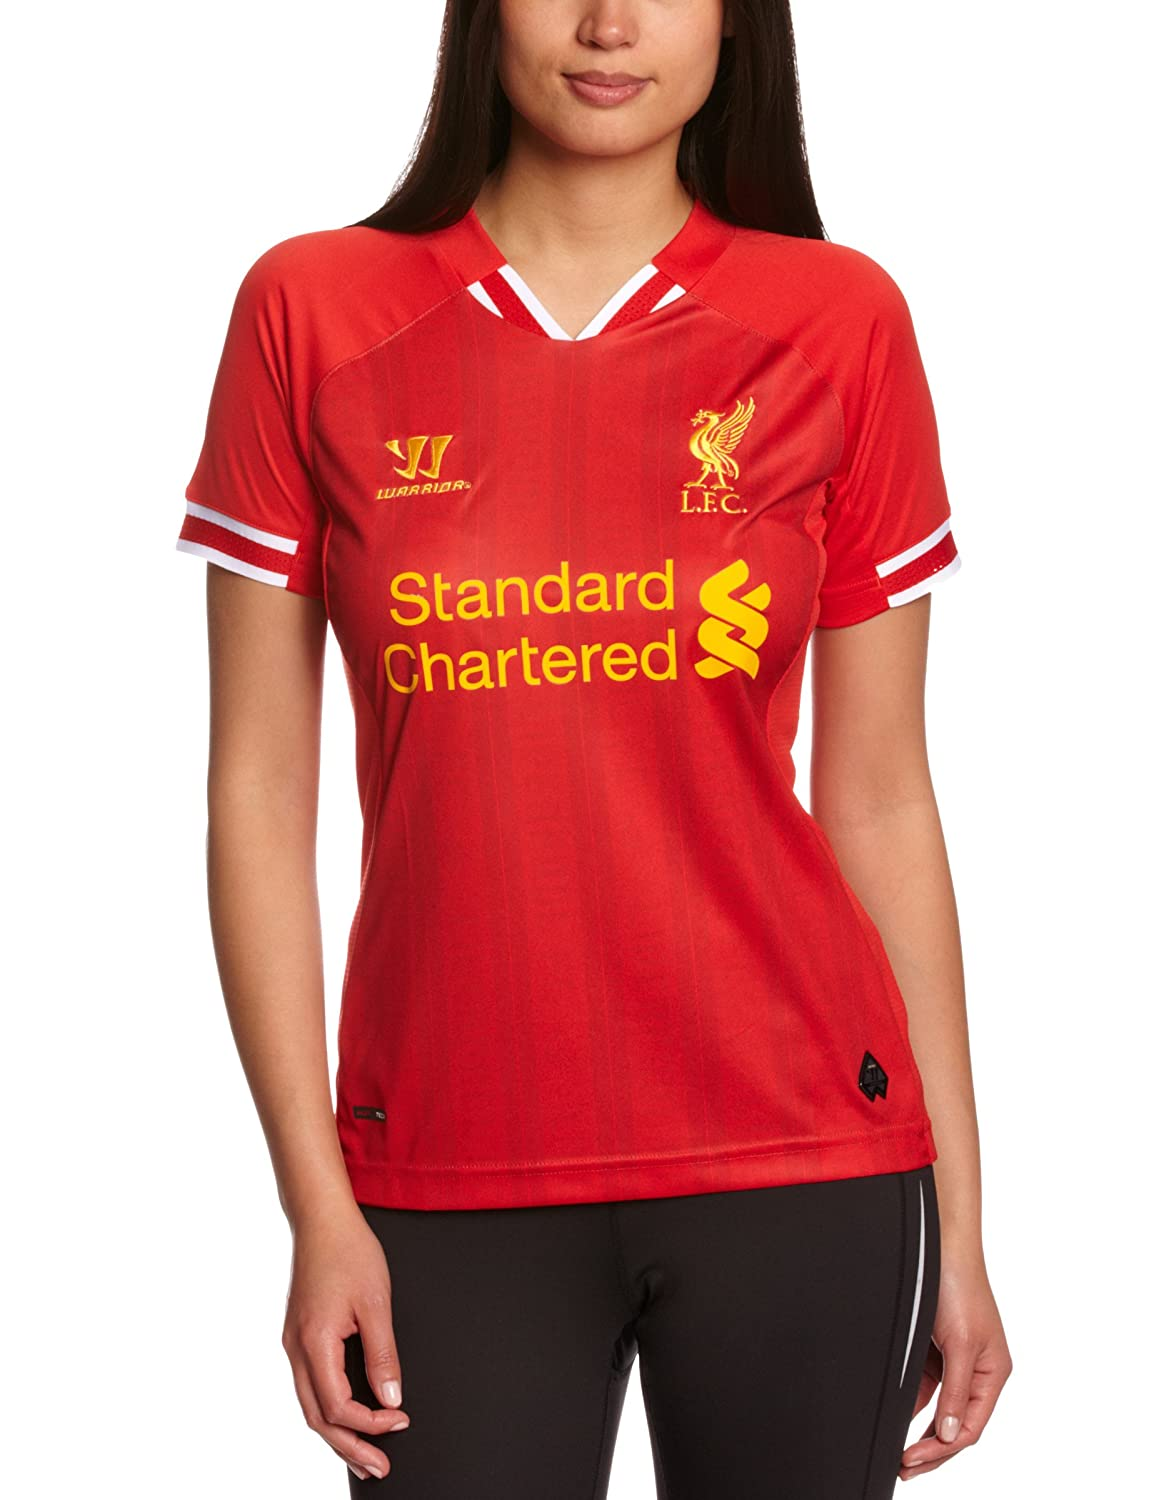 lowest price 914a0 8fb89 2013-14 Liverpool Womens Home Shirt, T-Shirts & Tops ...